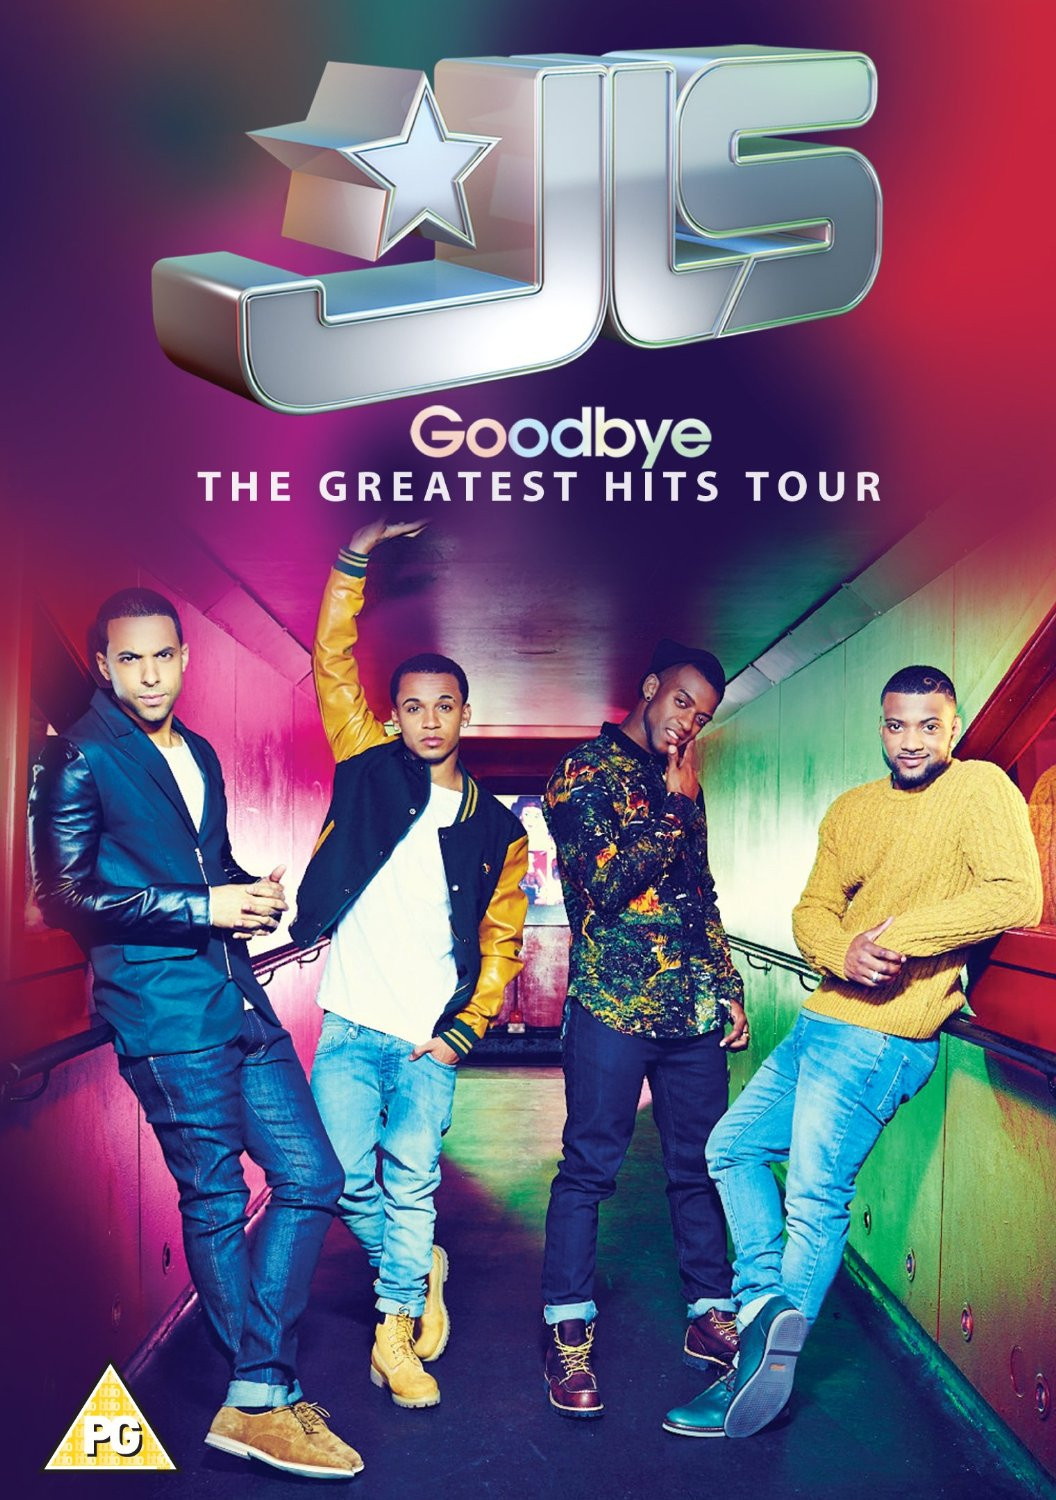 boom competitions - win a copy of JLS Goodbye: The Greatest Hits Tour on DVD